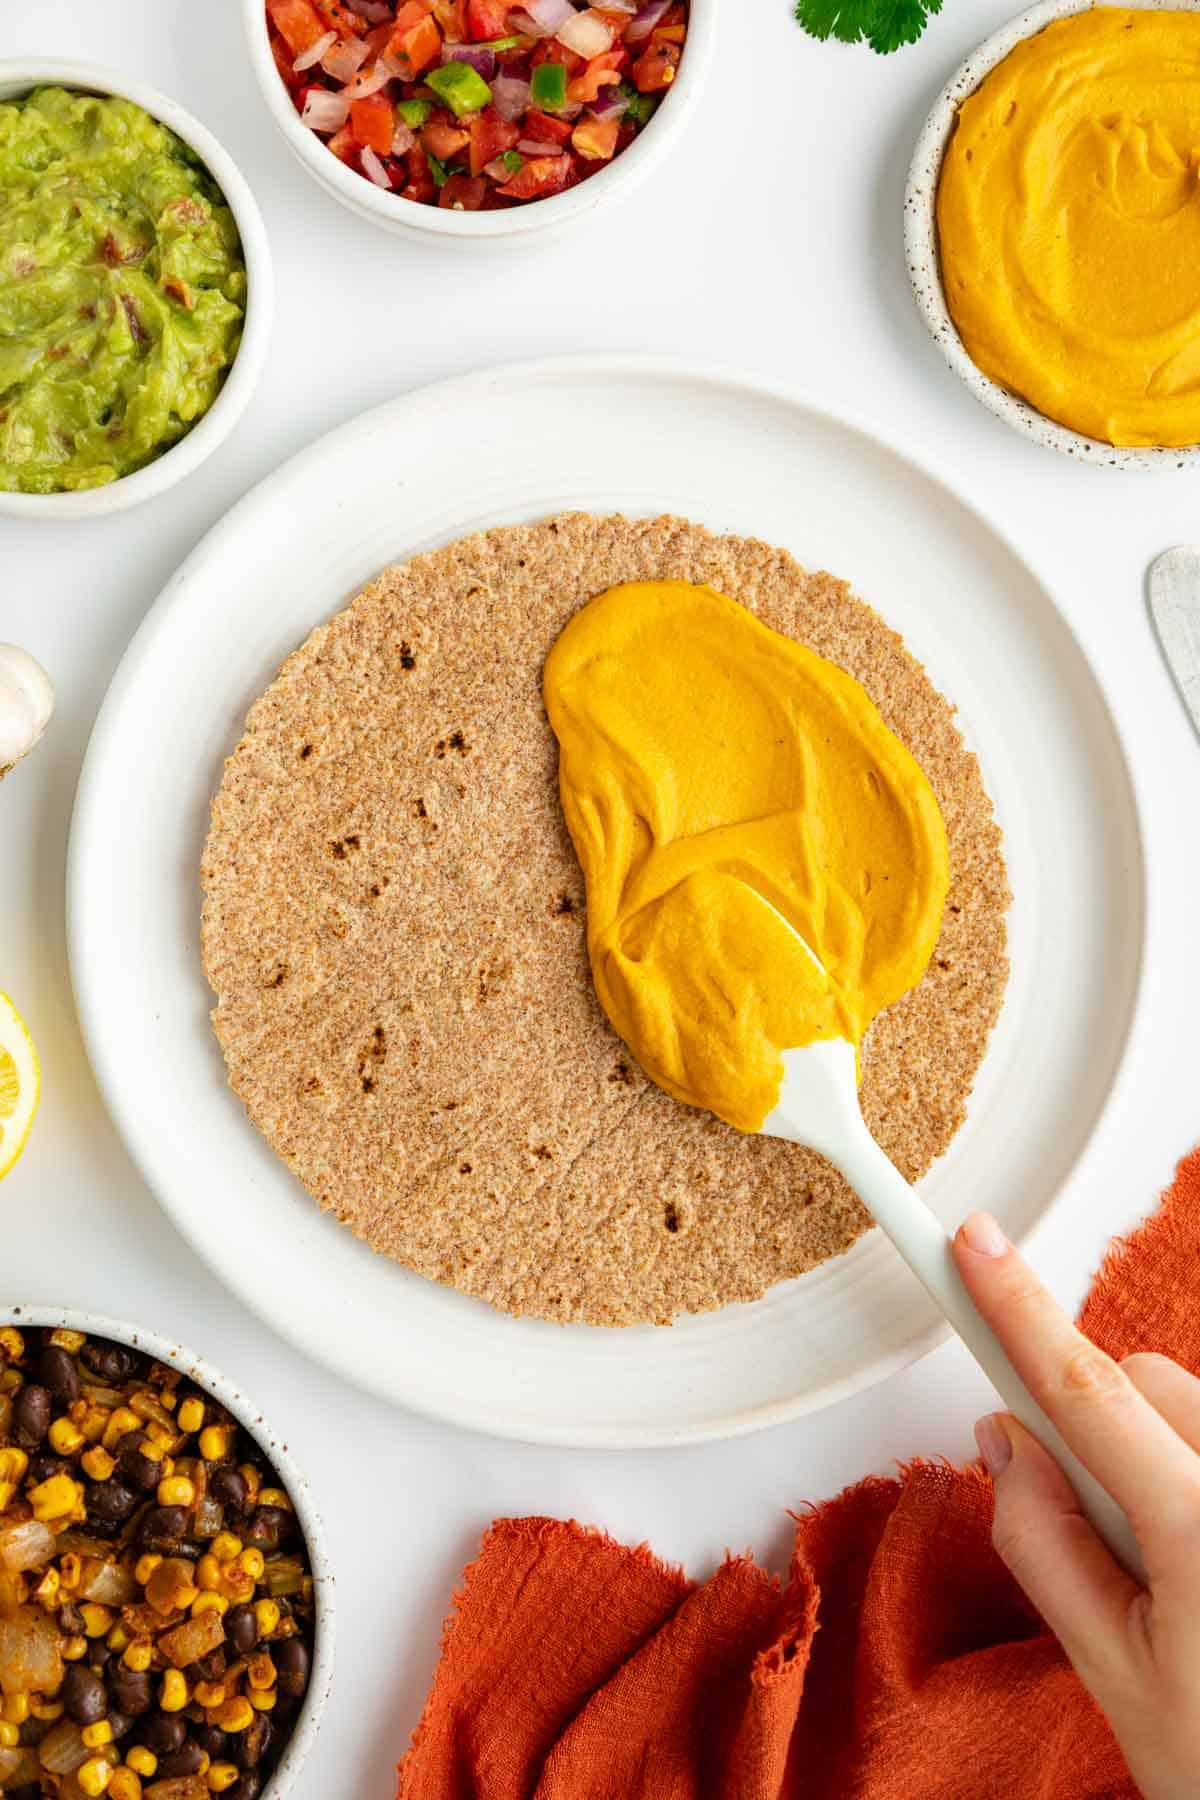 a hand spreading sweet potato cheese on a tortilla, surrounded by bowls of ingredients